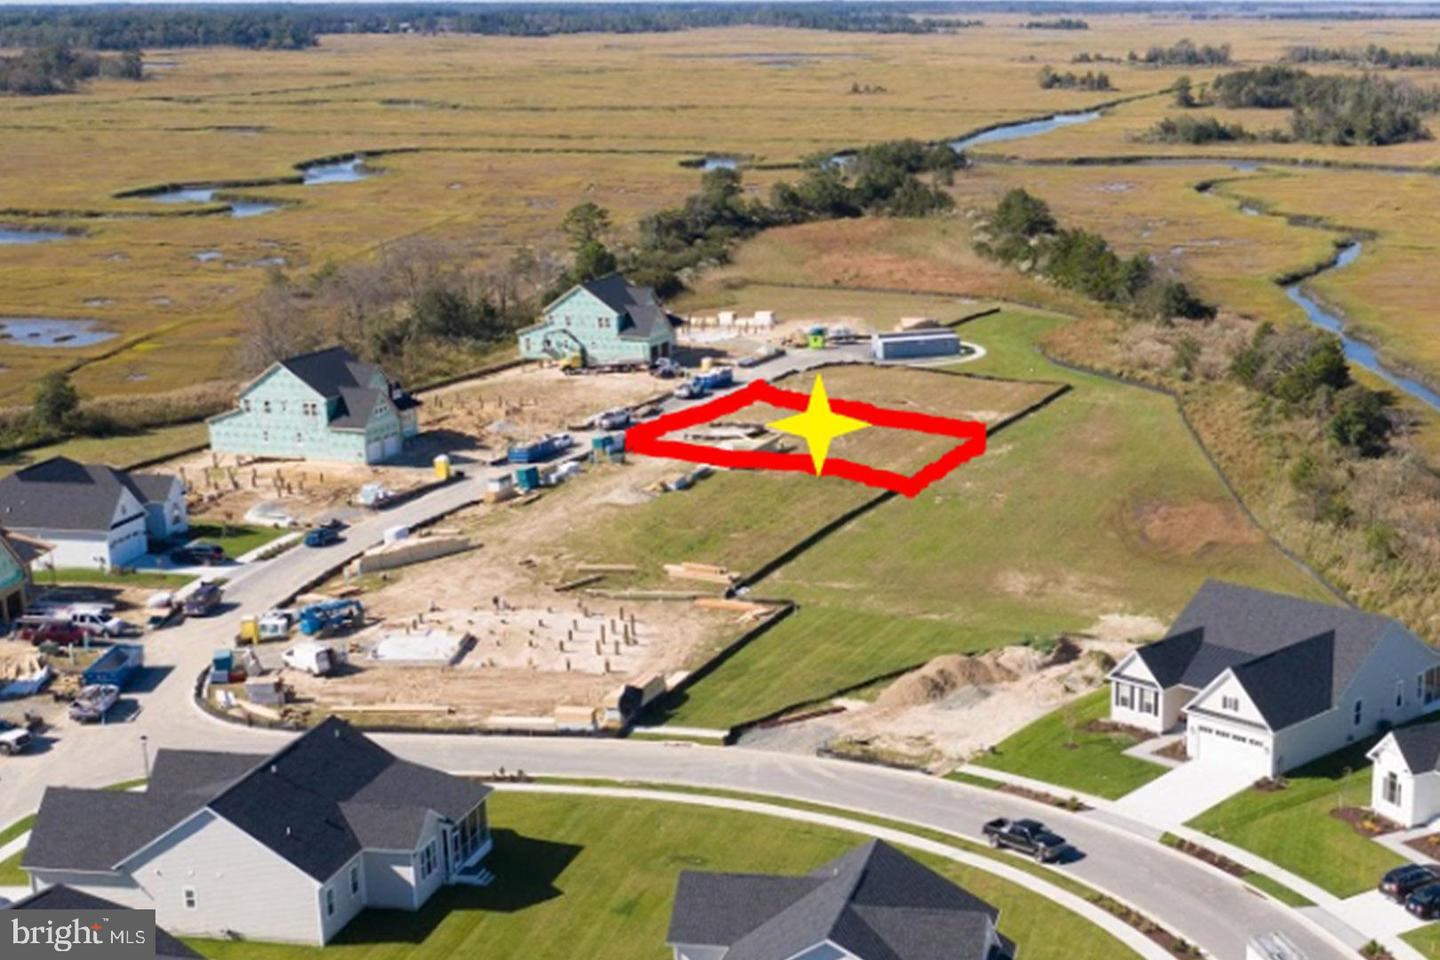 DESU172510-304382520779-2020-11-03-10-51-16 Browse our Lewes, Dewey, and Rehoboth Beach Real Estate Listings - Rehoboth Beach Real Estate - Bryce Lingo and Shaun Tull REALTORS, Rehoboth Beach, Delaware